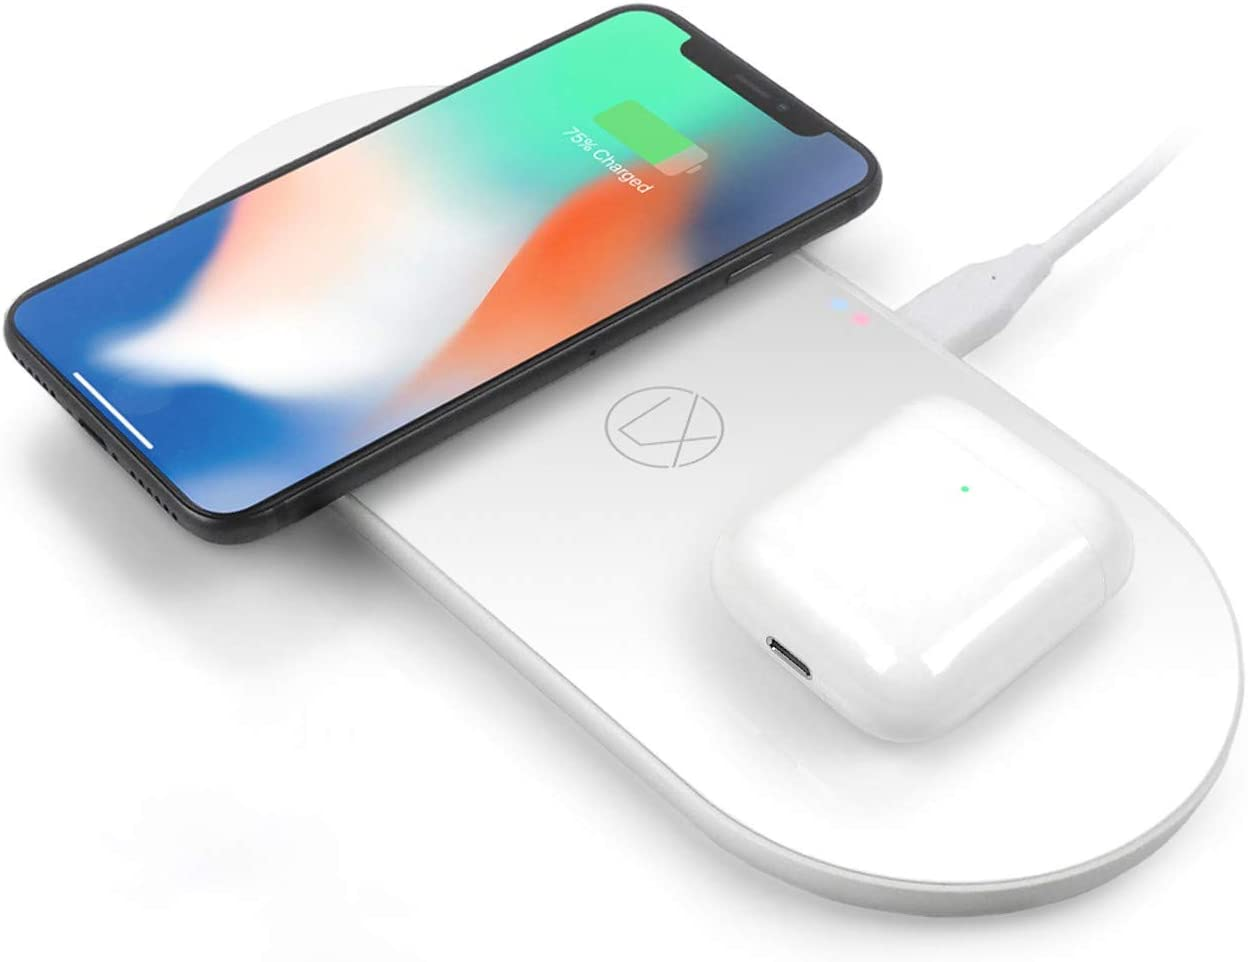 Wireless Charging Station 3 in 1 for iPhone 8/x/11/12 Airpods Galaxy Note S8/9/10/ and All Other Qi Enabled Wireless Charging Devices - Fast Dual Wireless Charger qi Pad (18W AC Adapter Included)